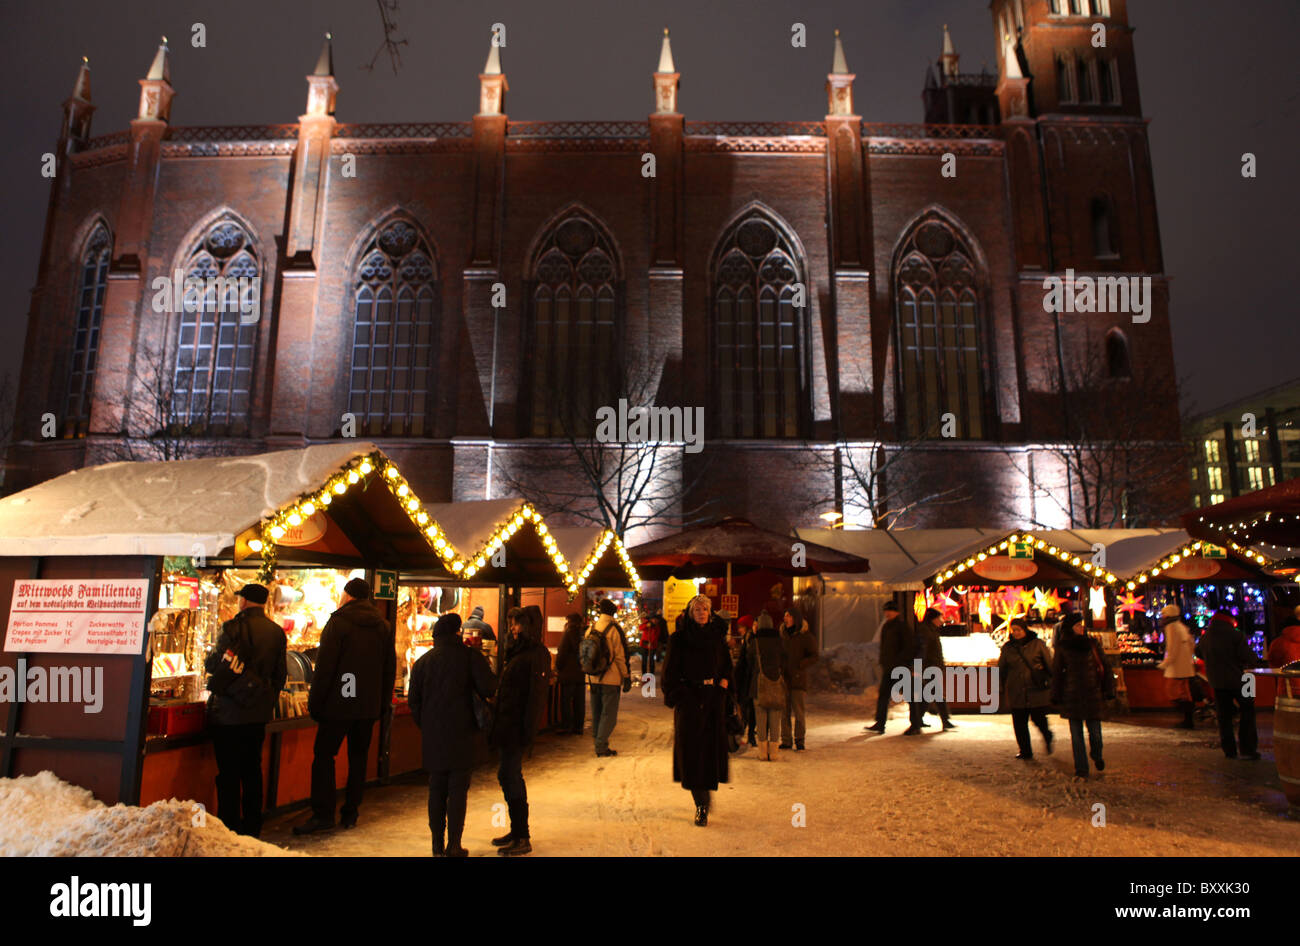 A Christmas market in central Berlin, Germany. - Stock Image